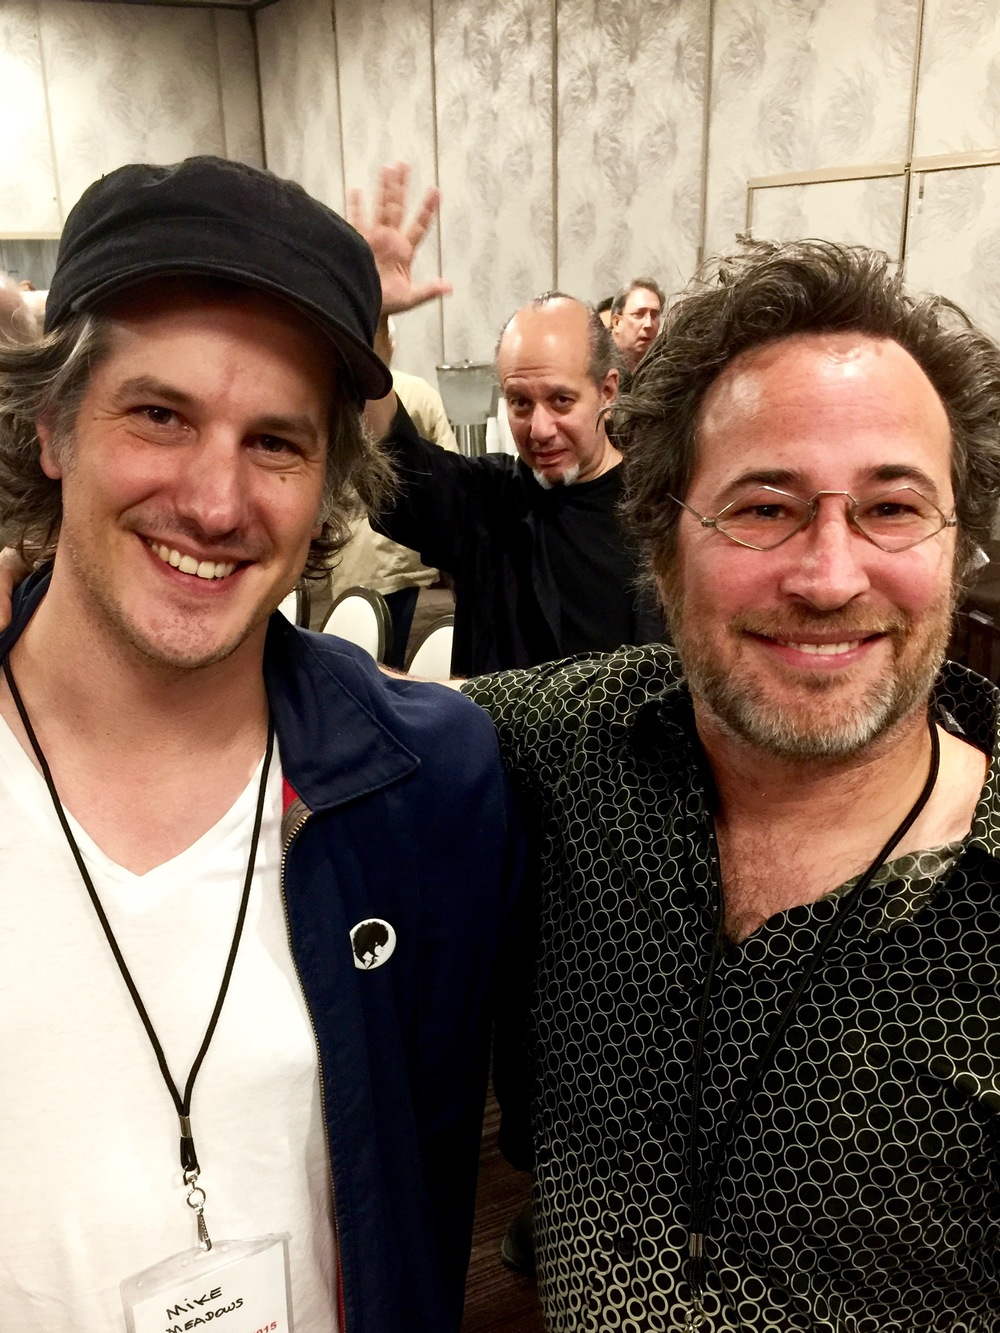 Dr. Jeremy Weiss and grammy award-winning Mike Meadows photobombed by famous magician Max Maven at MINDvention 2015.